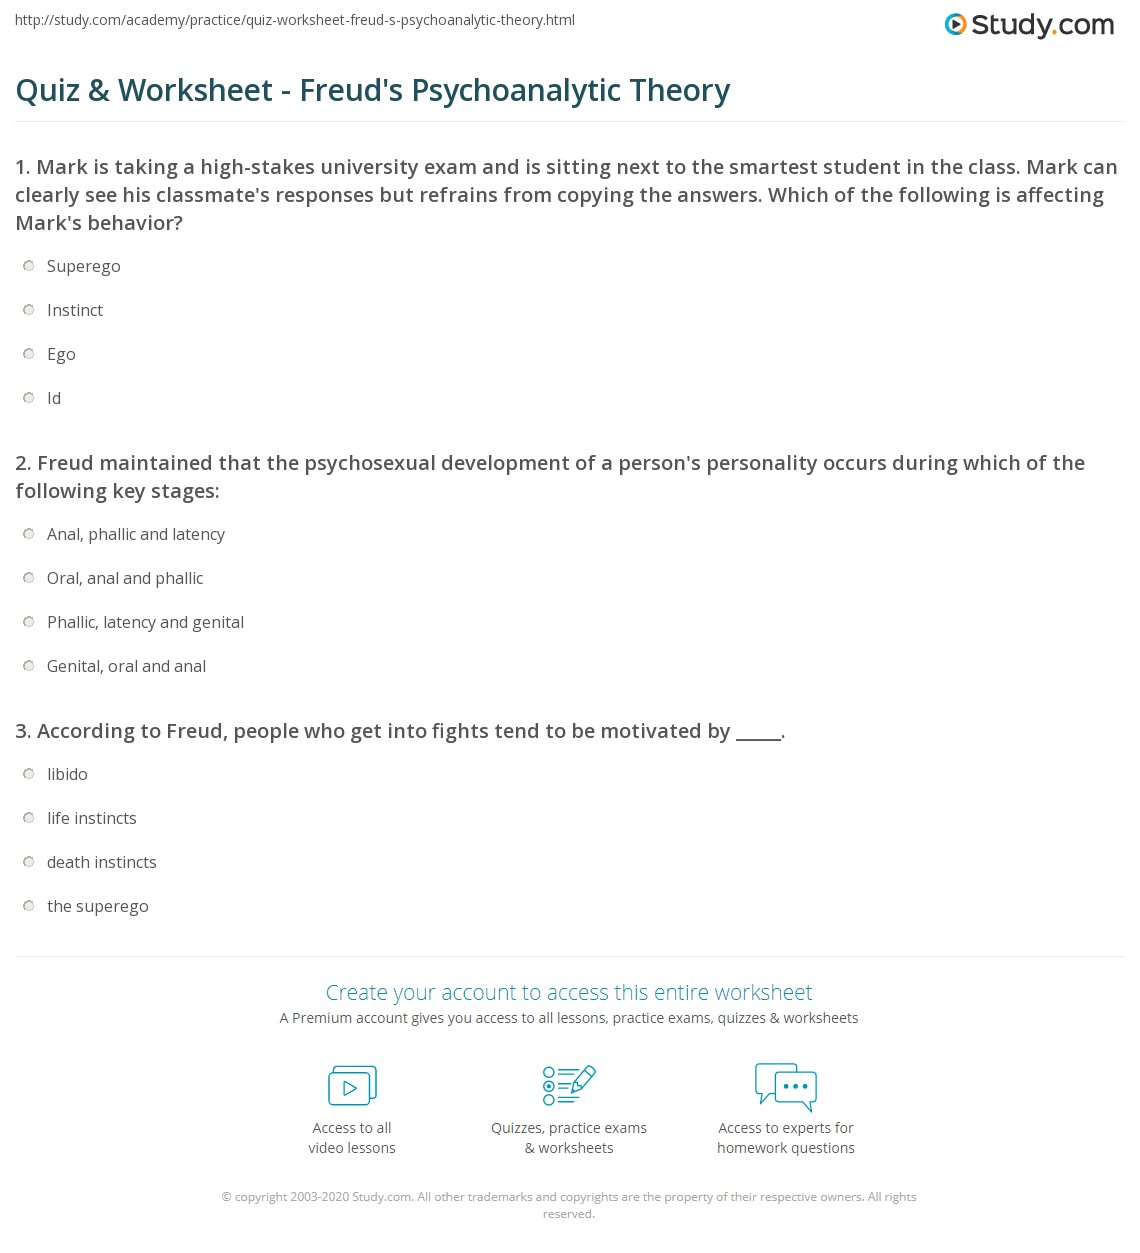 worksheet Theory Worksheets quiz worksheet freuds psychoanalytic theory study com print on instincts motivation personality development worksheet